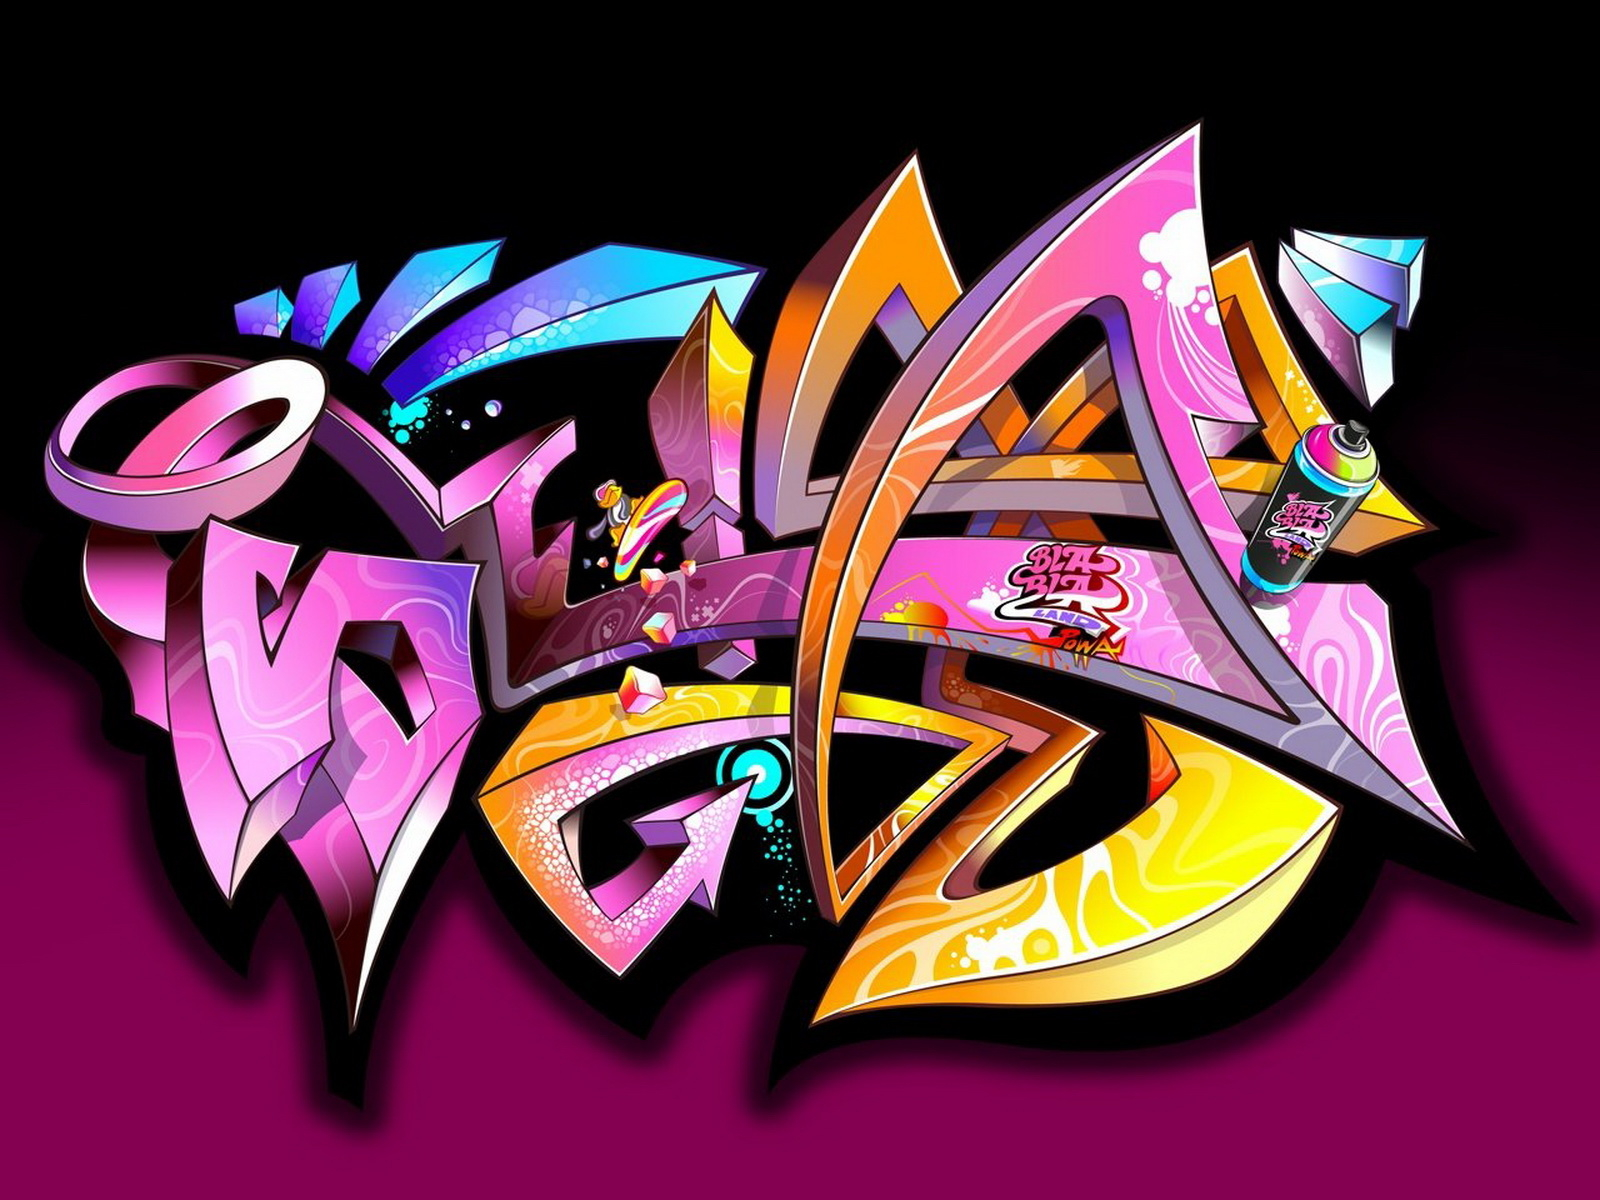 graffiti backgrounds graffiti backgrounds graffiti backgrounds 1600x1200